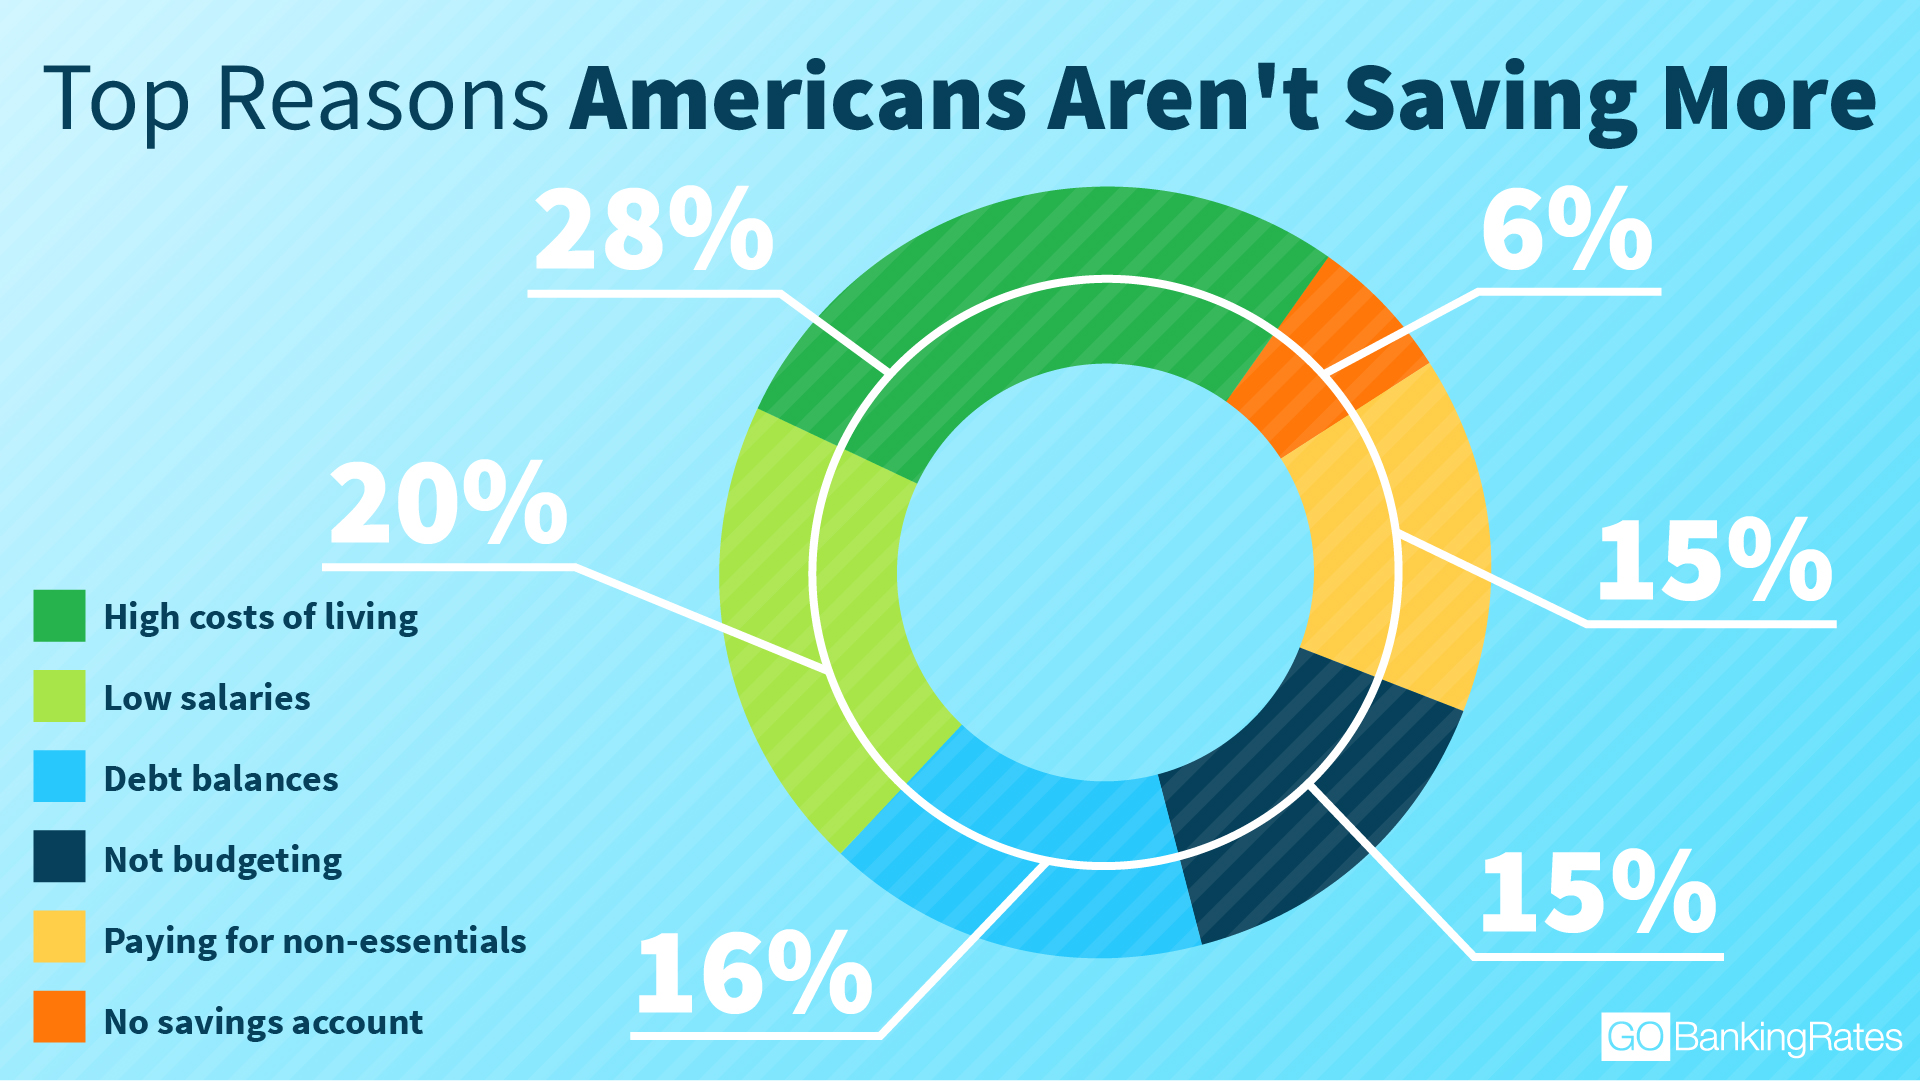 Americans Top Reasons for Not Saving More Infographic